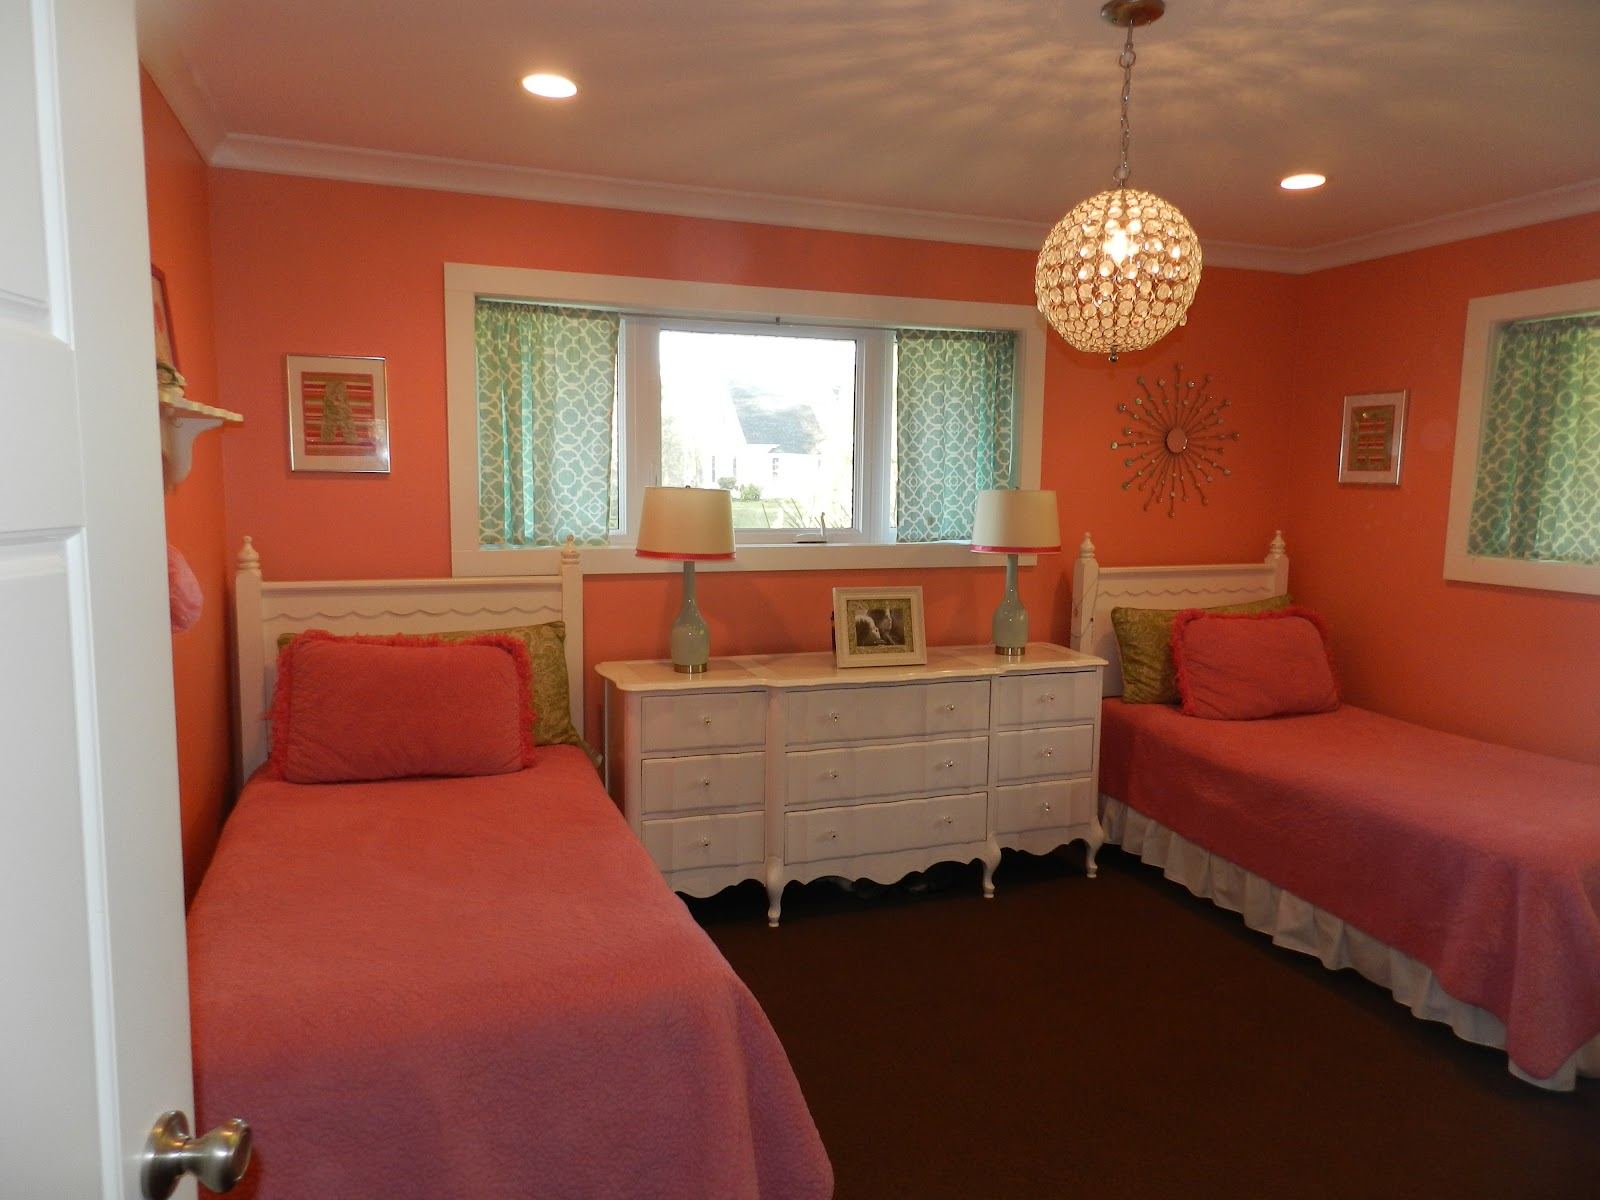 Coral Painted Rooms Julie Peterson Simple Redesign I Just Took My Obsession For